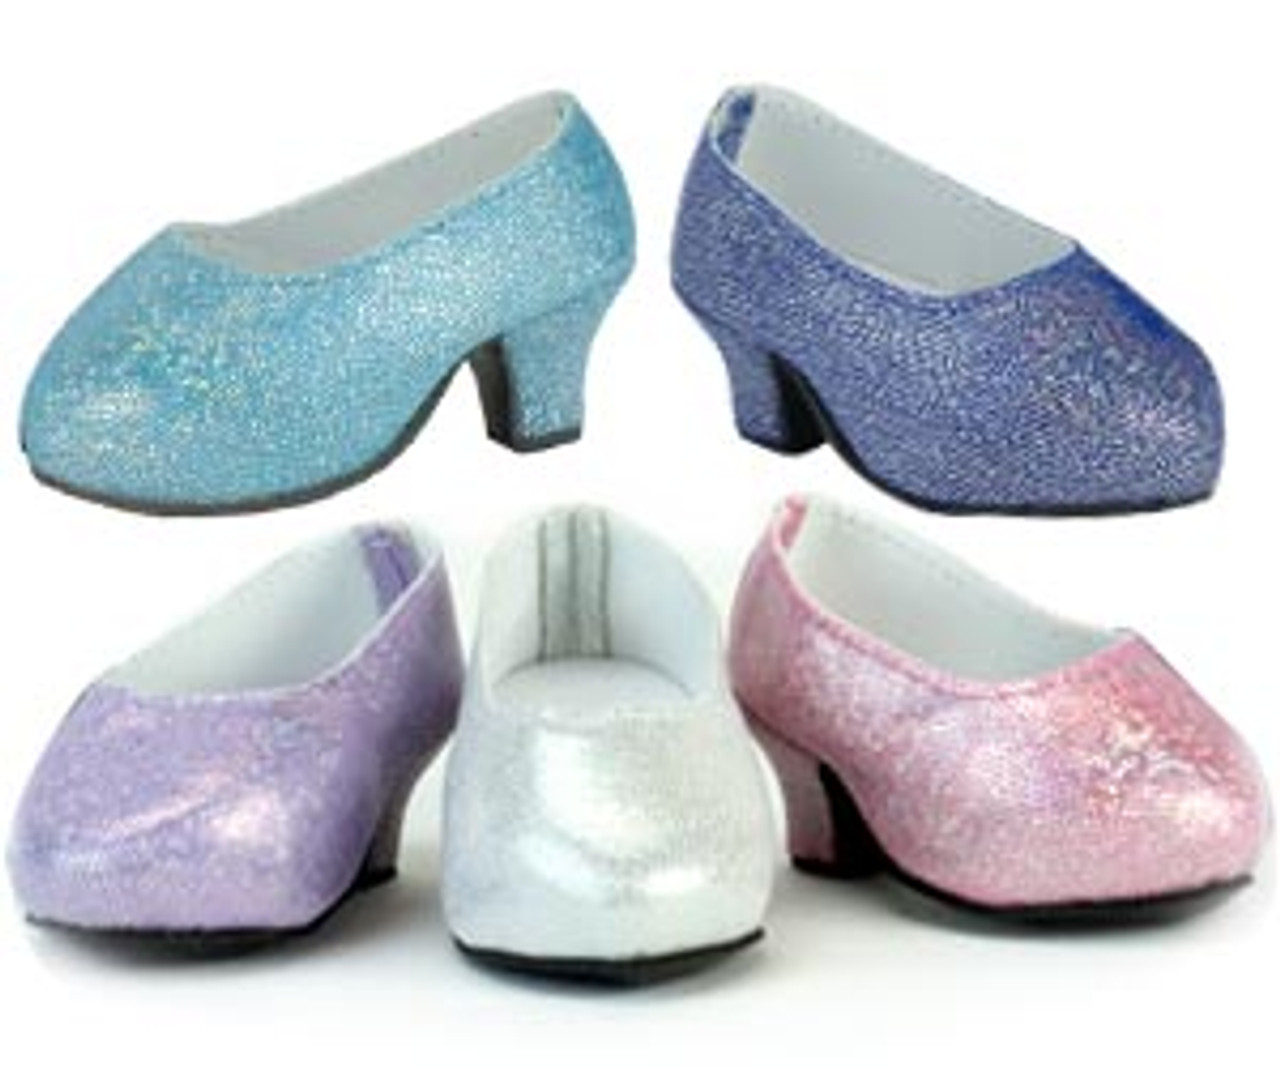 Silver Glitter Slip On Shoes 18 in Doll Clothes Fits American Girl